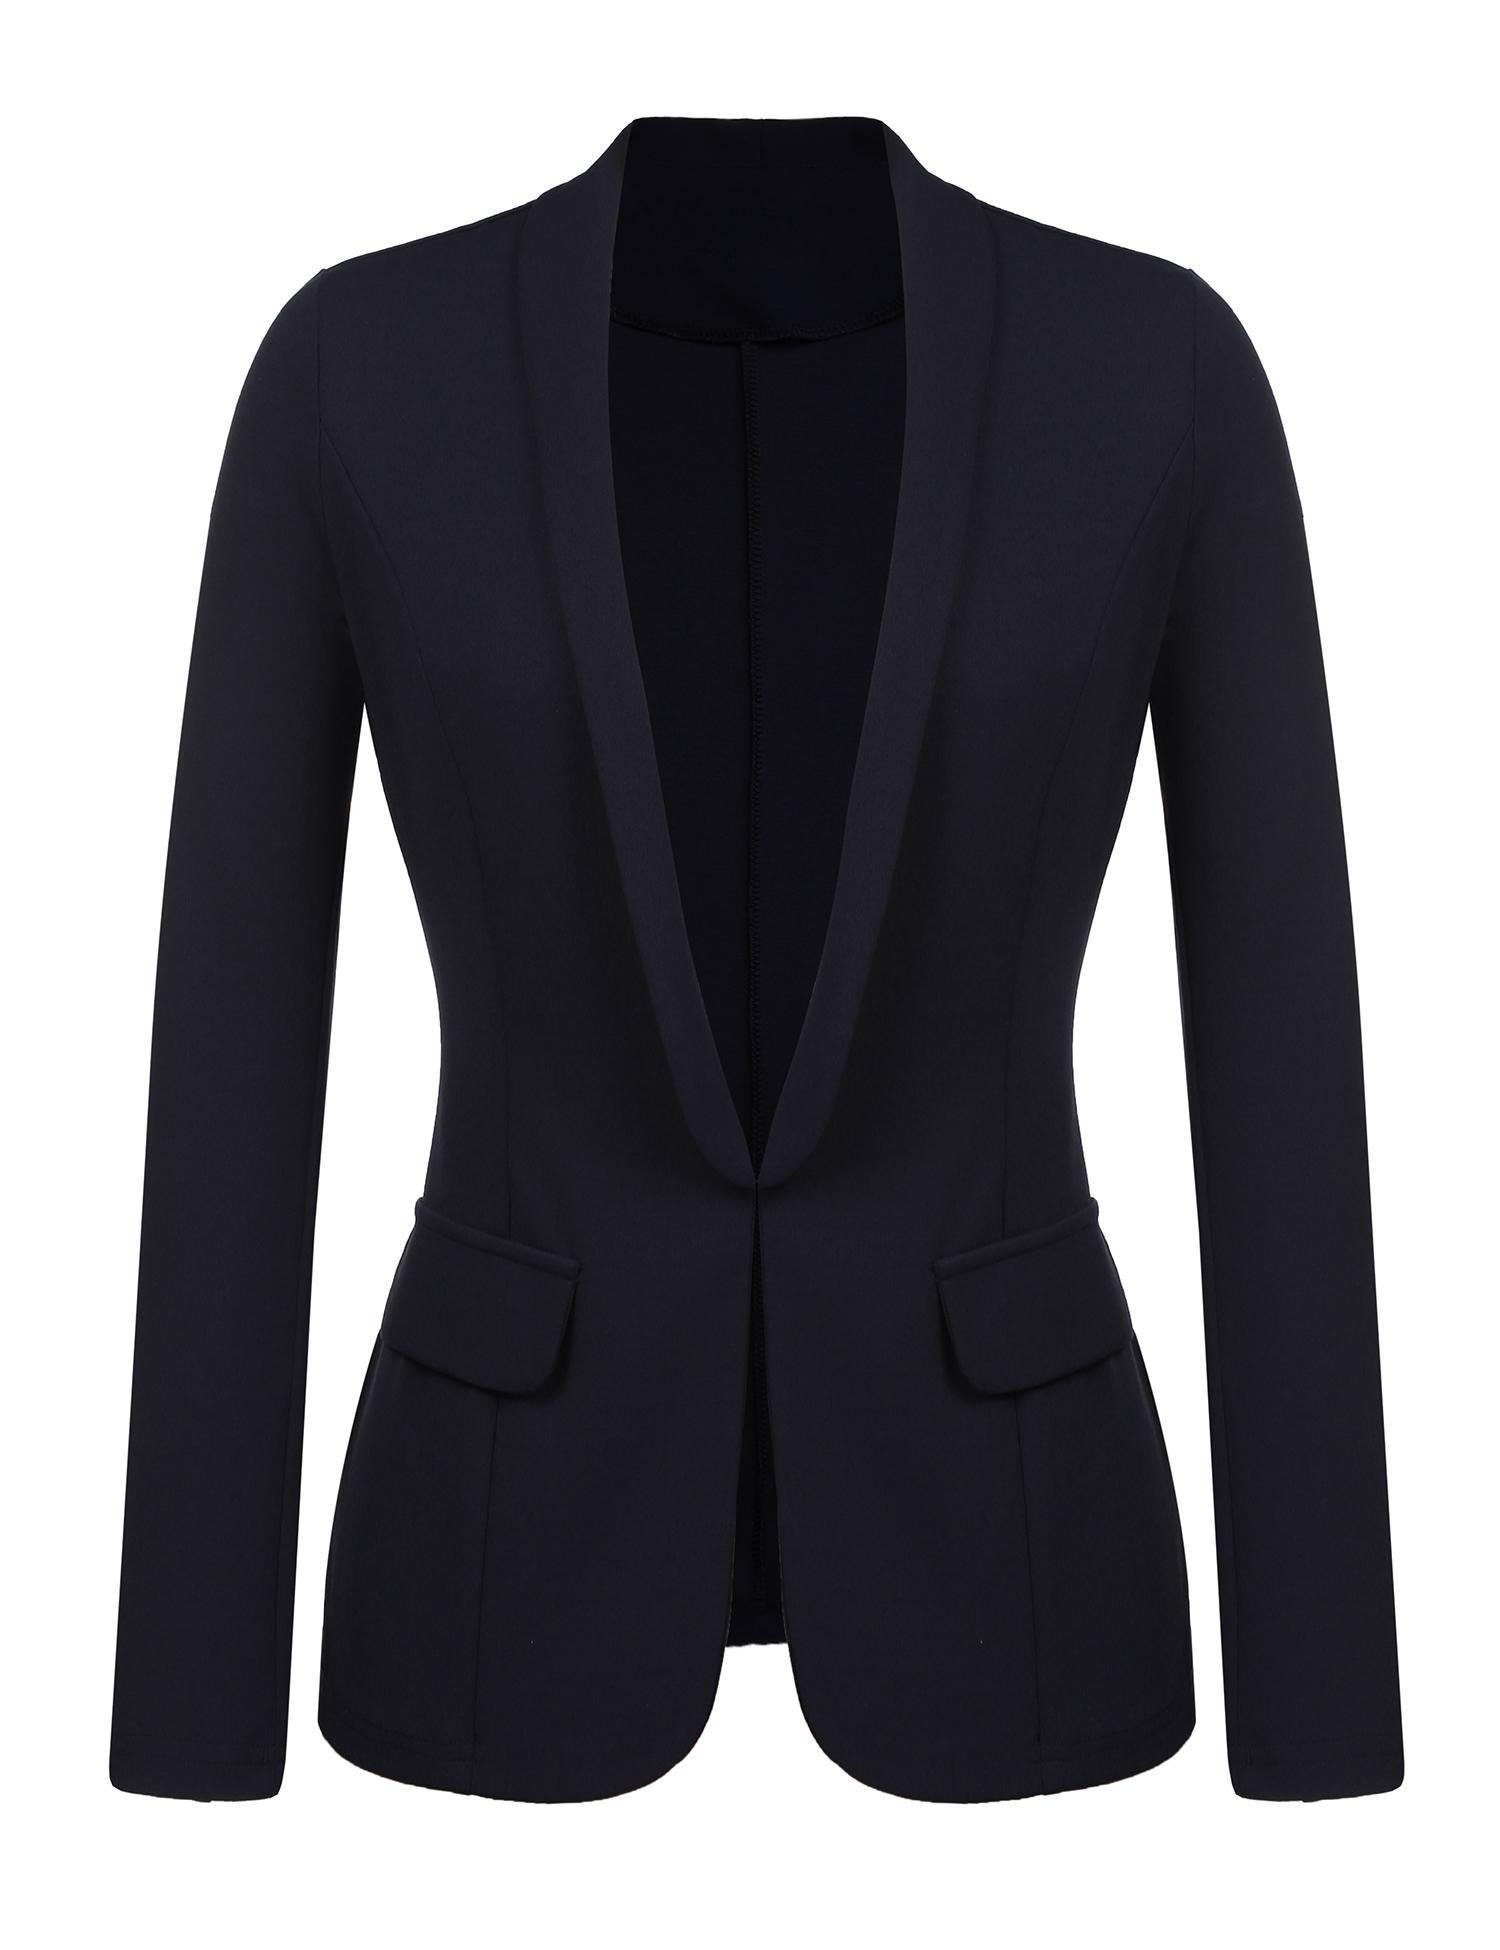 Kaimu Women's Casual Long Sleeve Open Front Blazer Work Office Cardigan Classic Jacket Suit